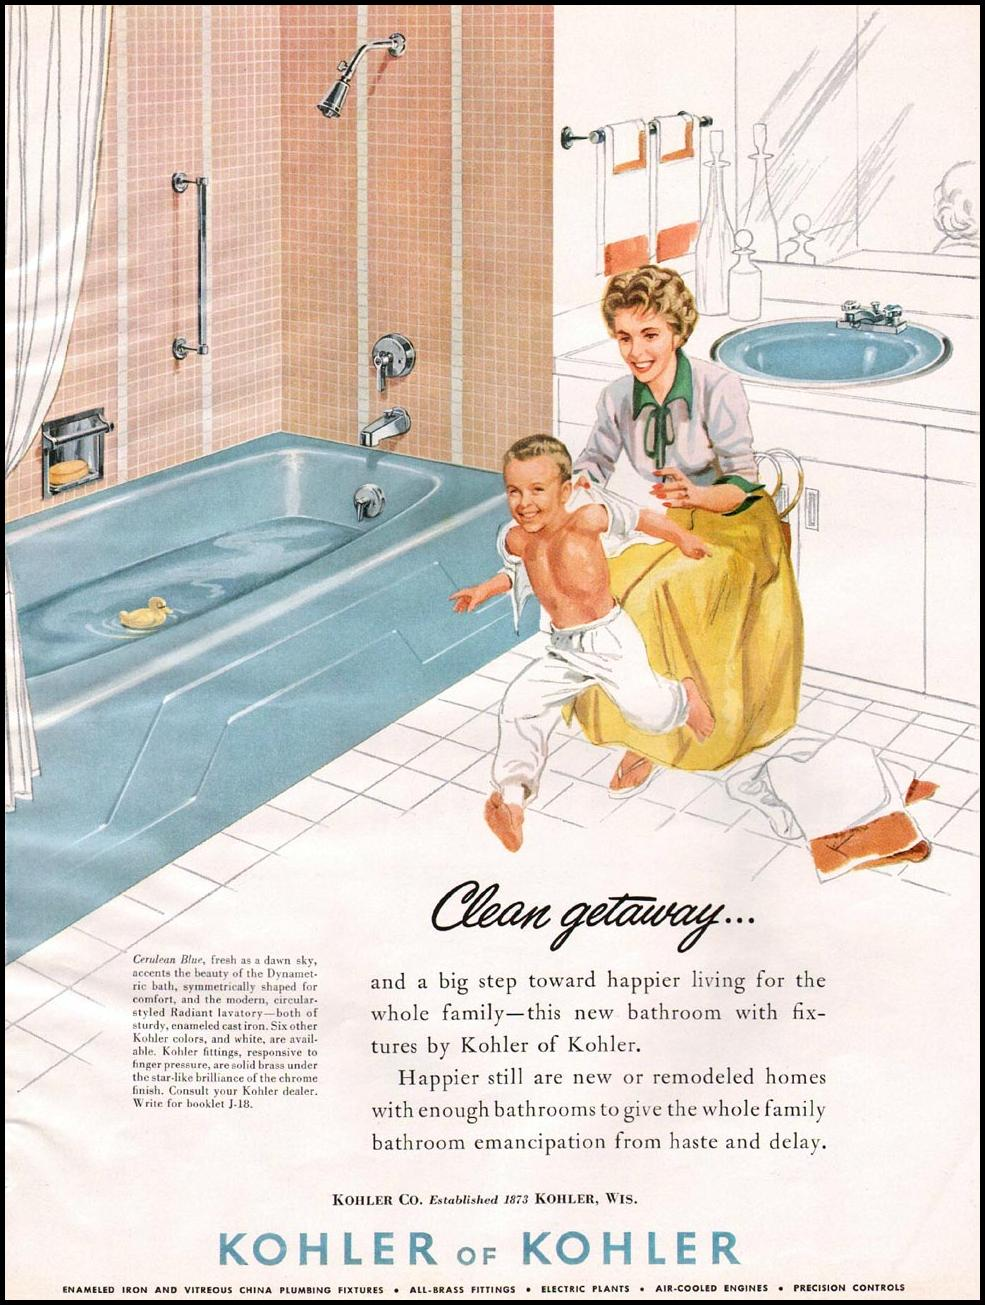 KOHLER BATHROOM FIXTURES BETTER HOMES AND GARDENS 03/01/1960